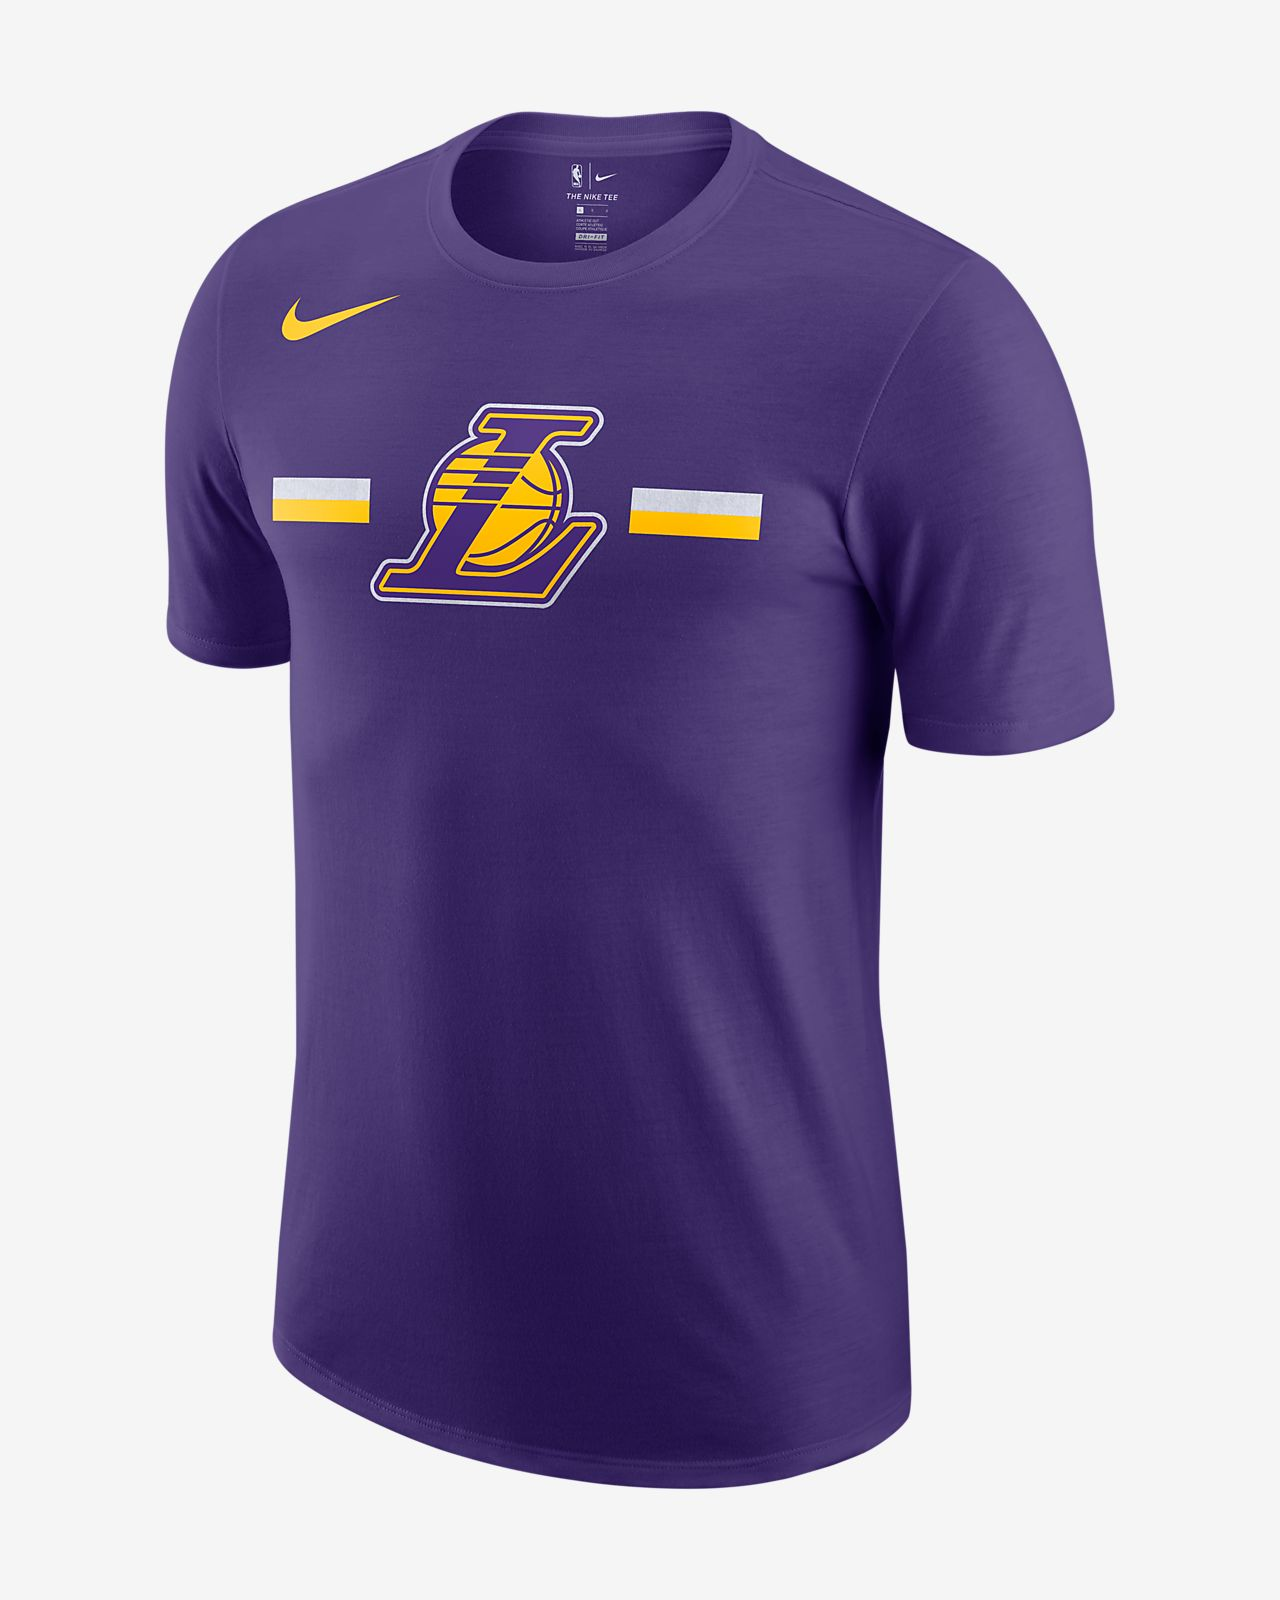 Los Angeles Lakers Nike Dri-FIT Men's NBA T-Shirt